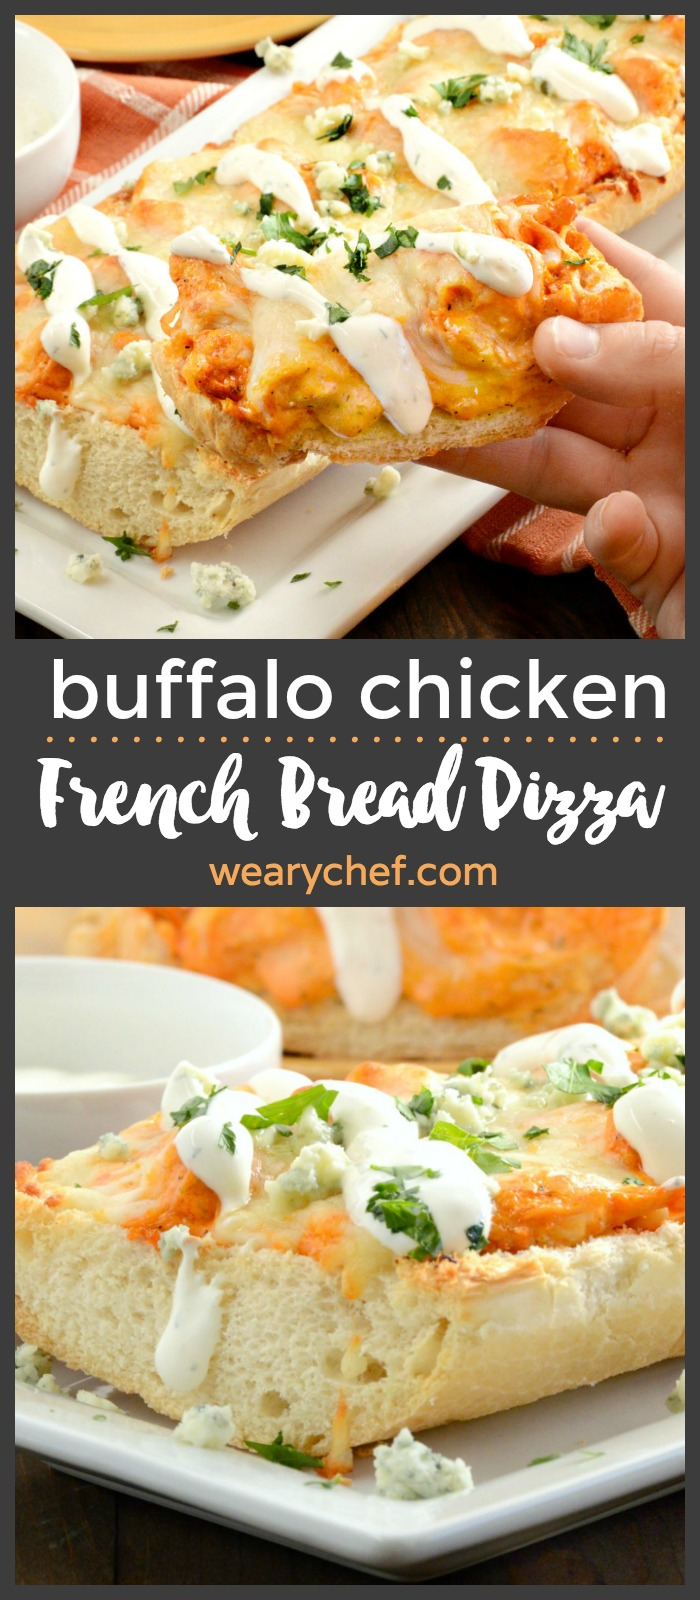 This scrumptious french bread pizza topped with buffalo chicken, ranch, and melted cheese is an easy dinner recipe you'll want to make again and again!